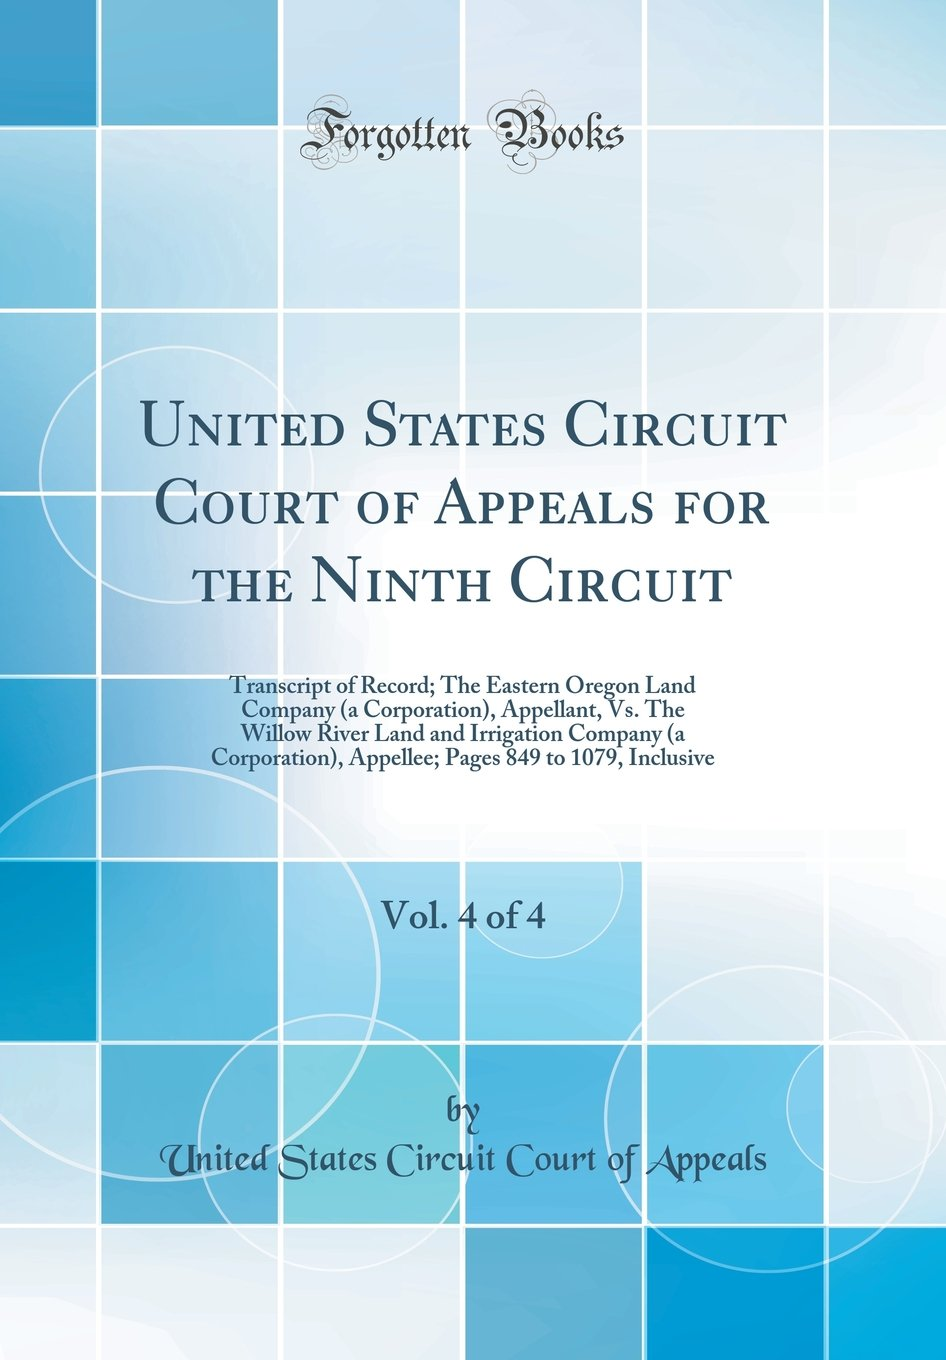 United States Circuit Court of Appeals for the Ninth Circuit, Vol. 4 of 4: Transcript of Record; The Eastern Oregon Land Company (a Corporation), ... Appellee; Pages 849 to 1079, Inc pdf epub